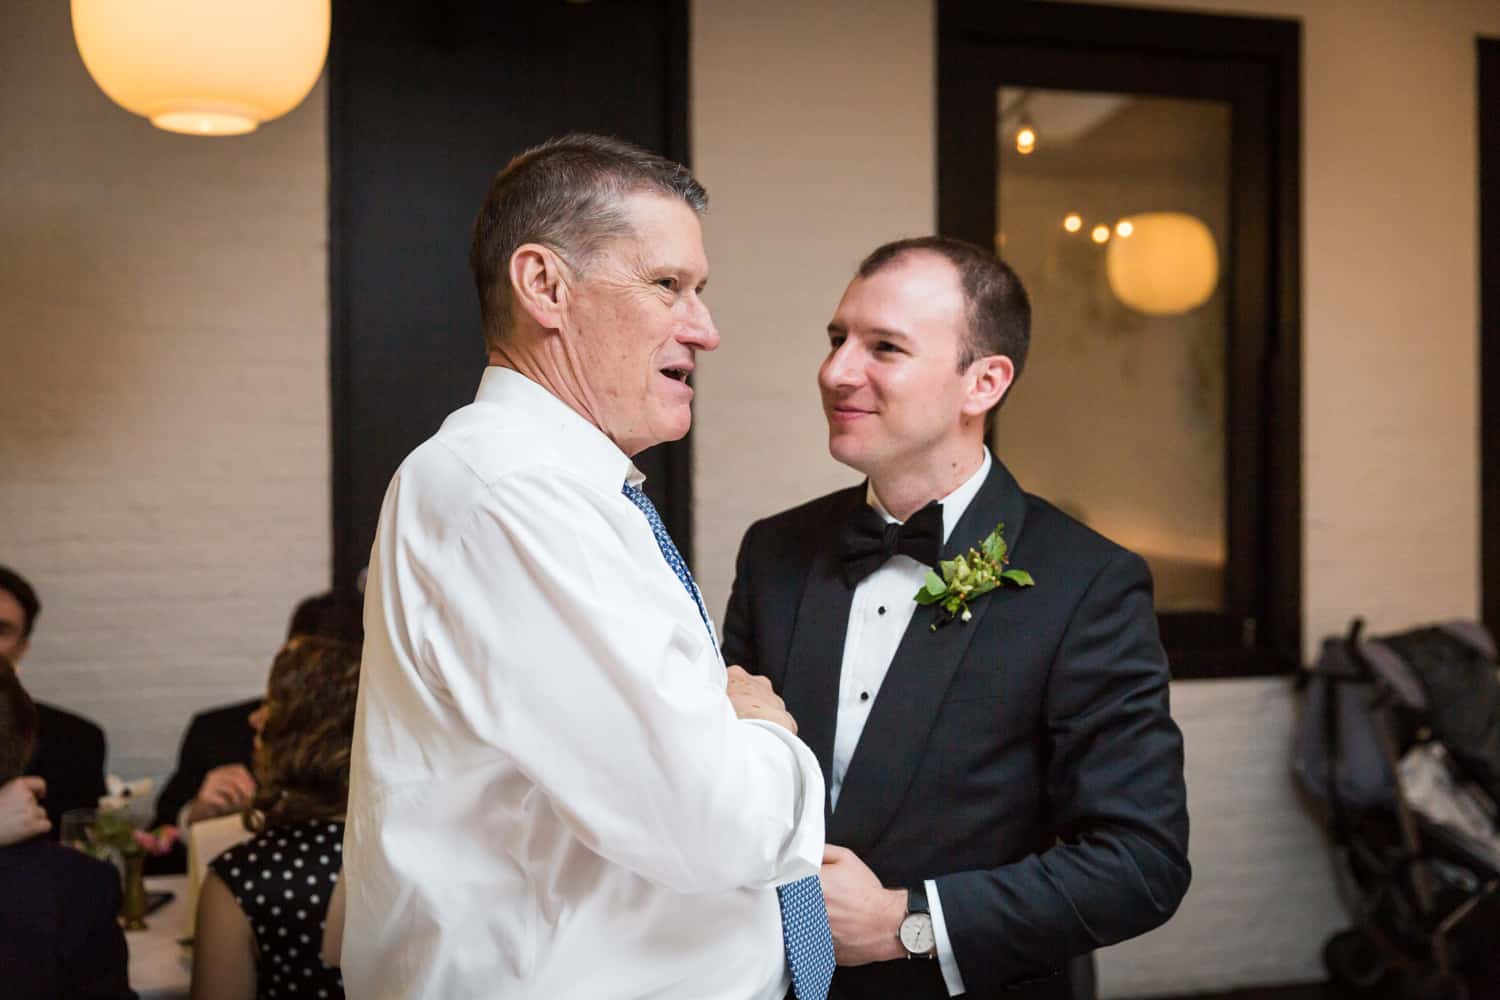 Groom speaking with guest at wedding reception